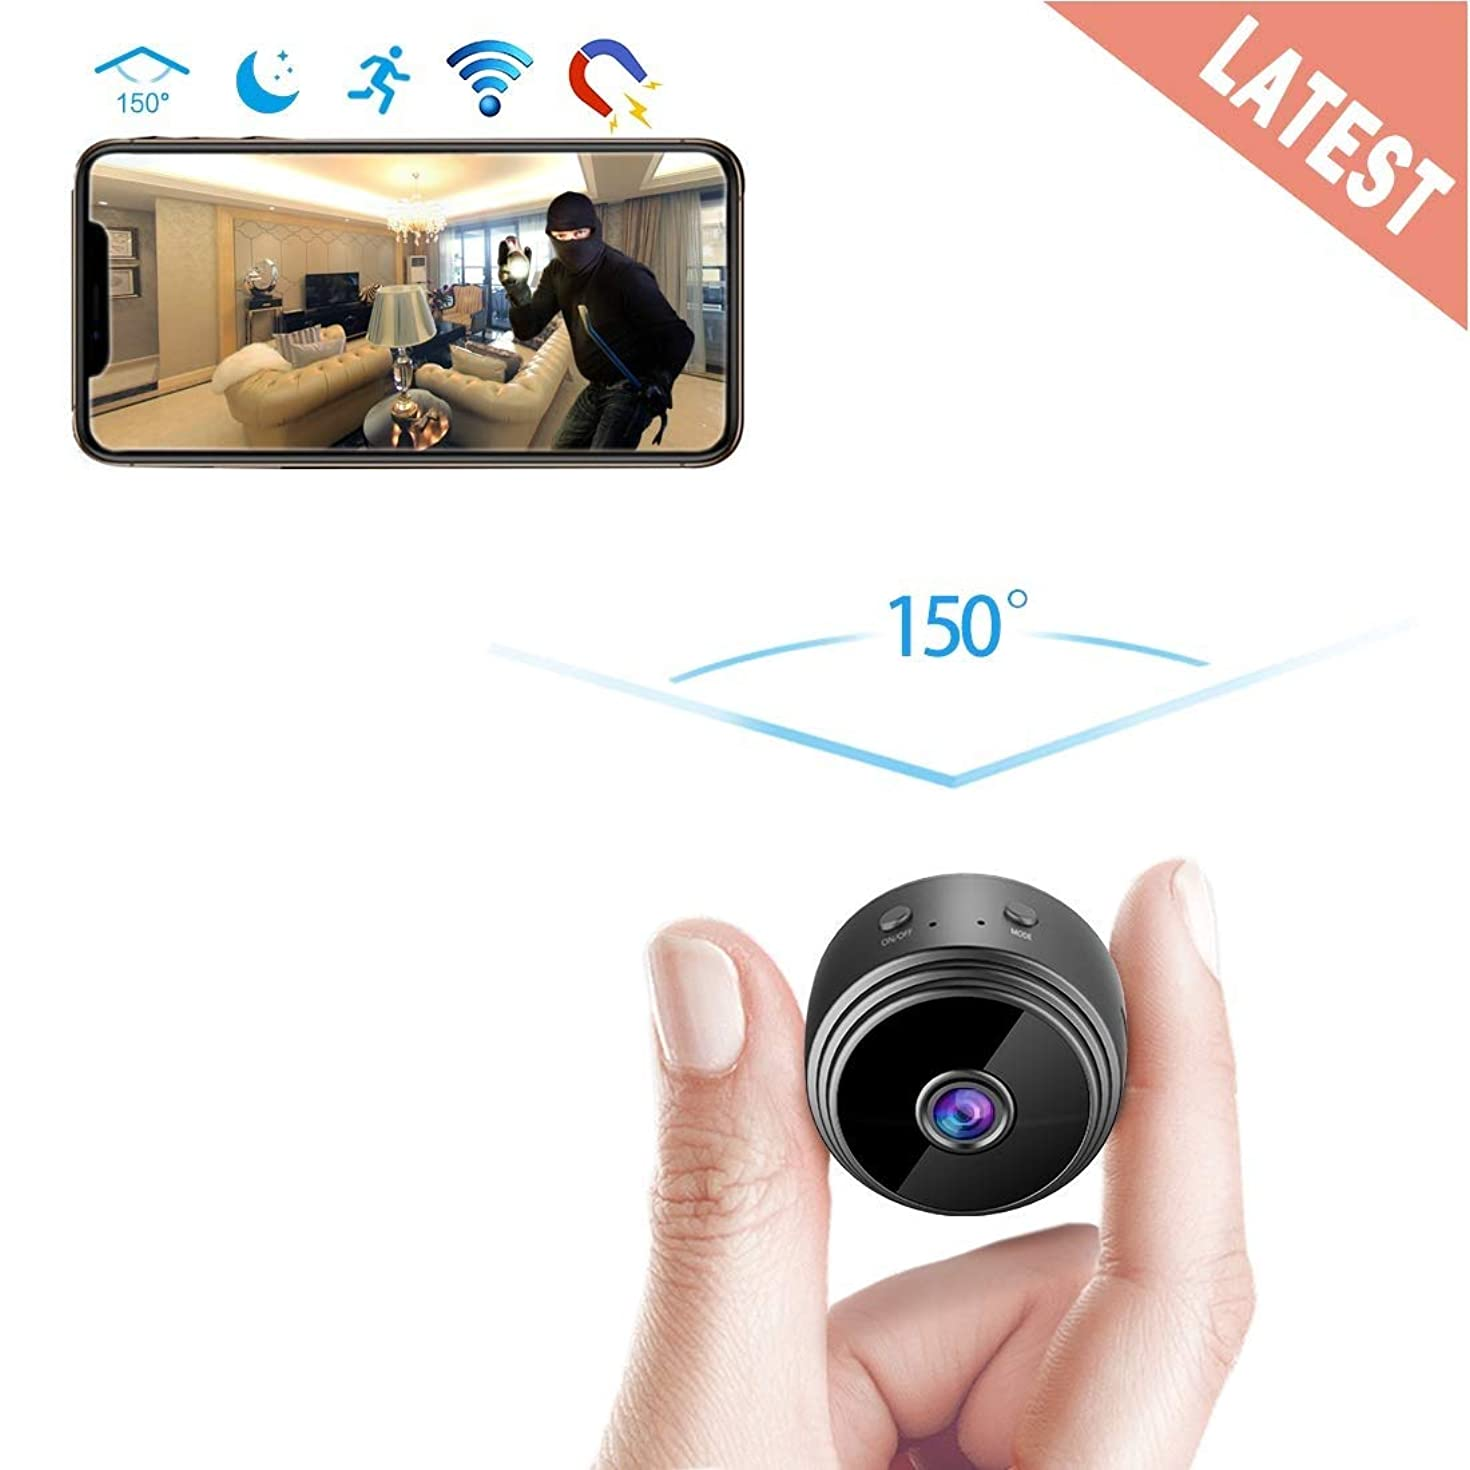 GXSLKWL Spy Camera Wireless Hidden WiFi Camera HD 1080P Mini Camera Covert Nanny Cam Small Indoor Video Recorder Motion Activated/Night Vision Portable Home Security Cameras